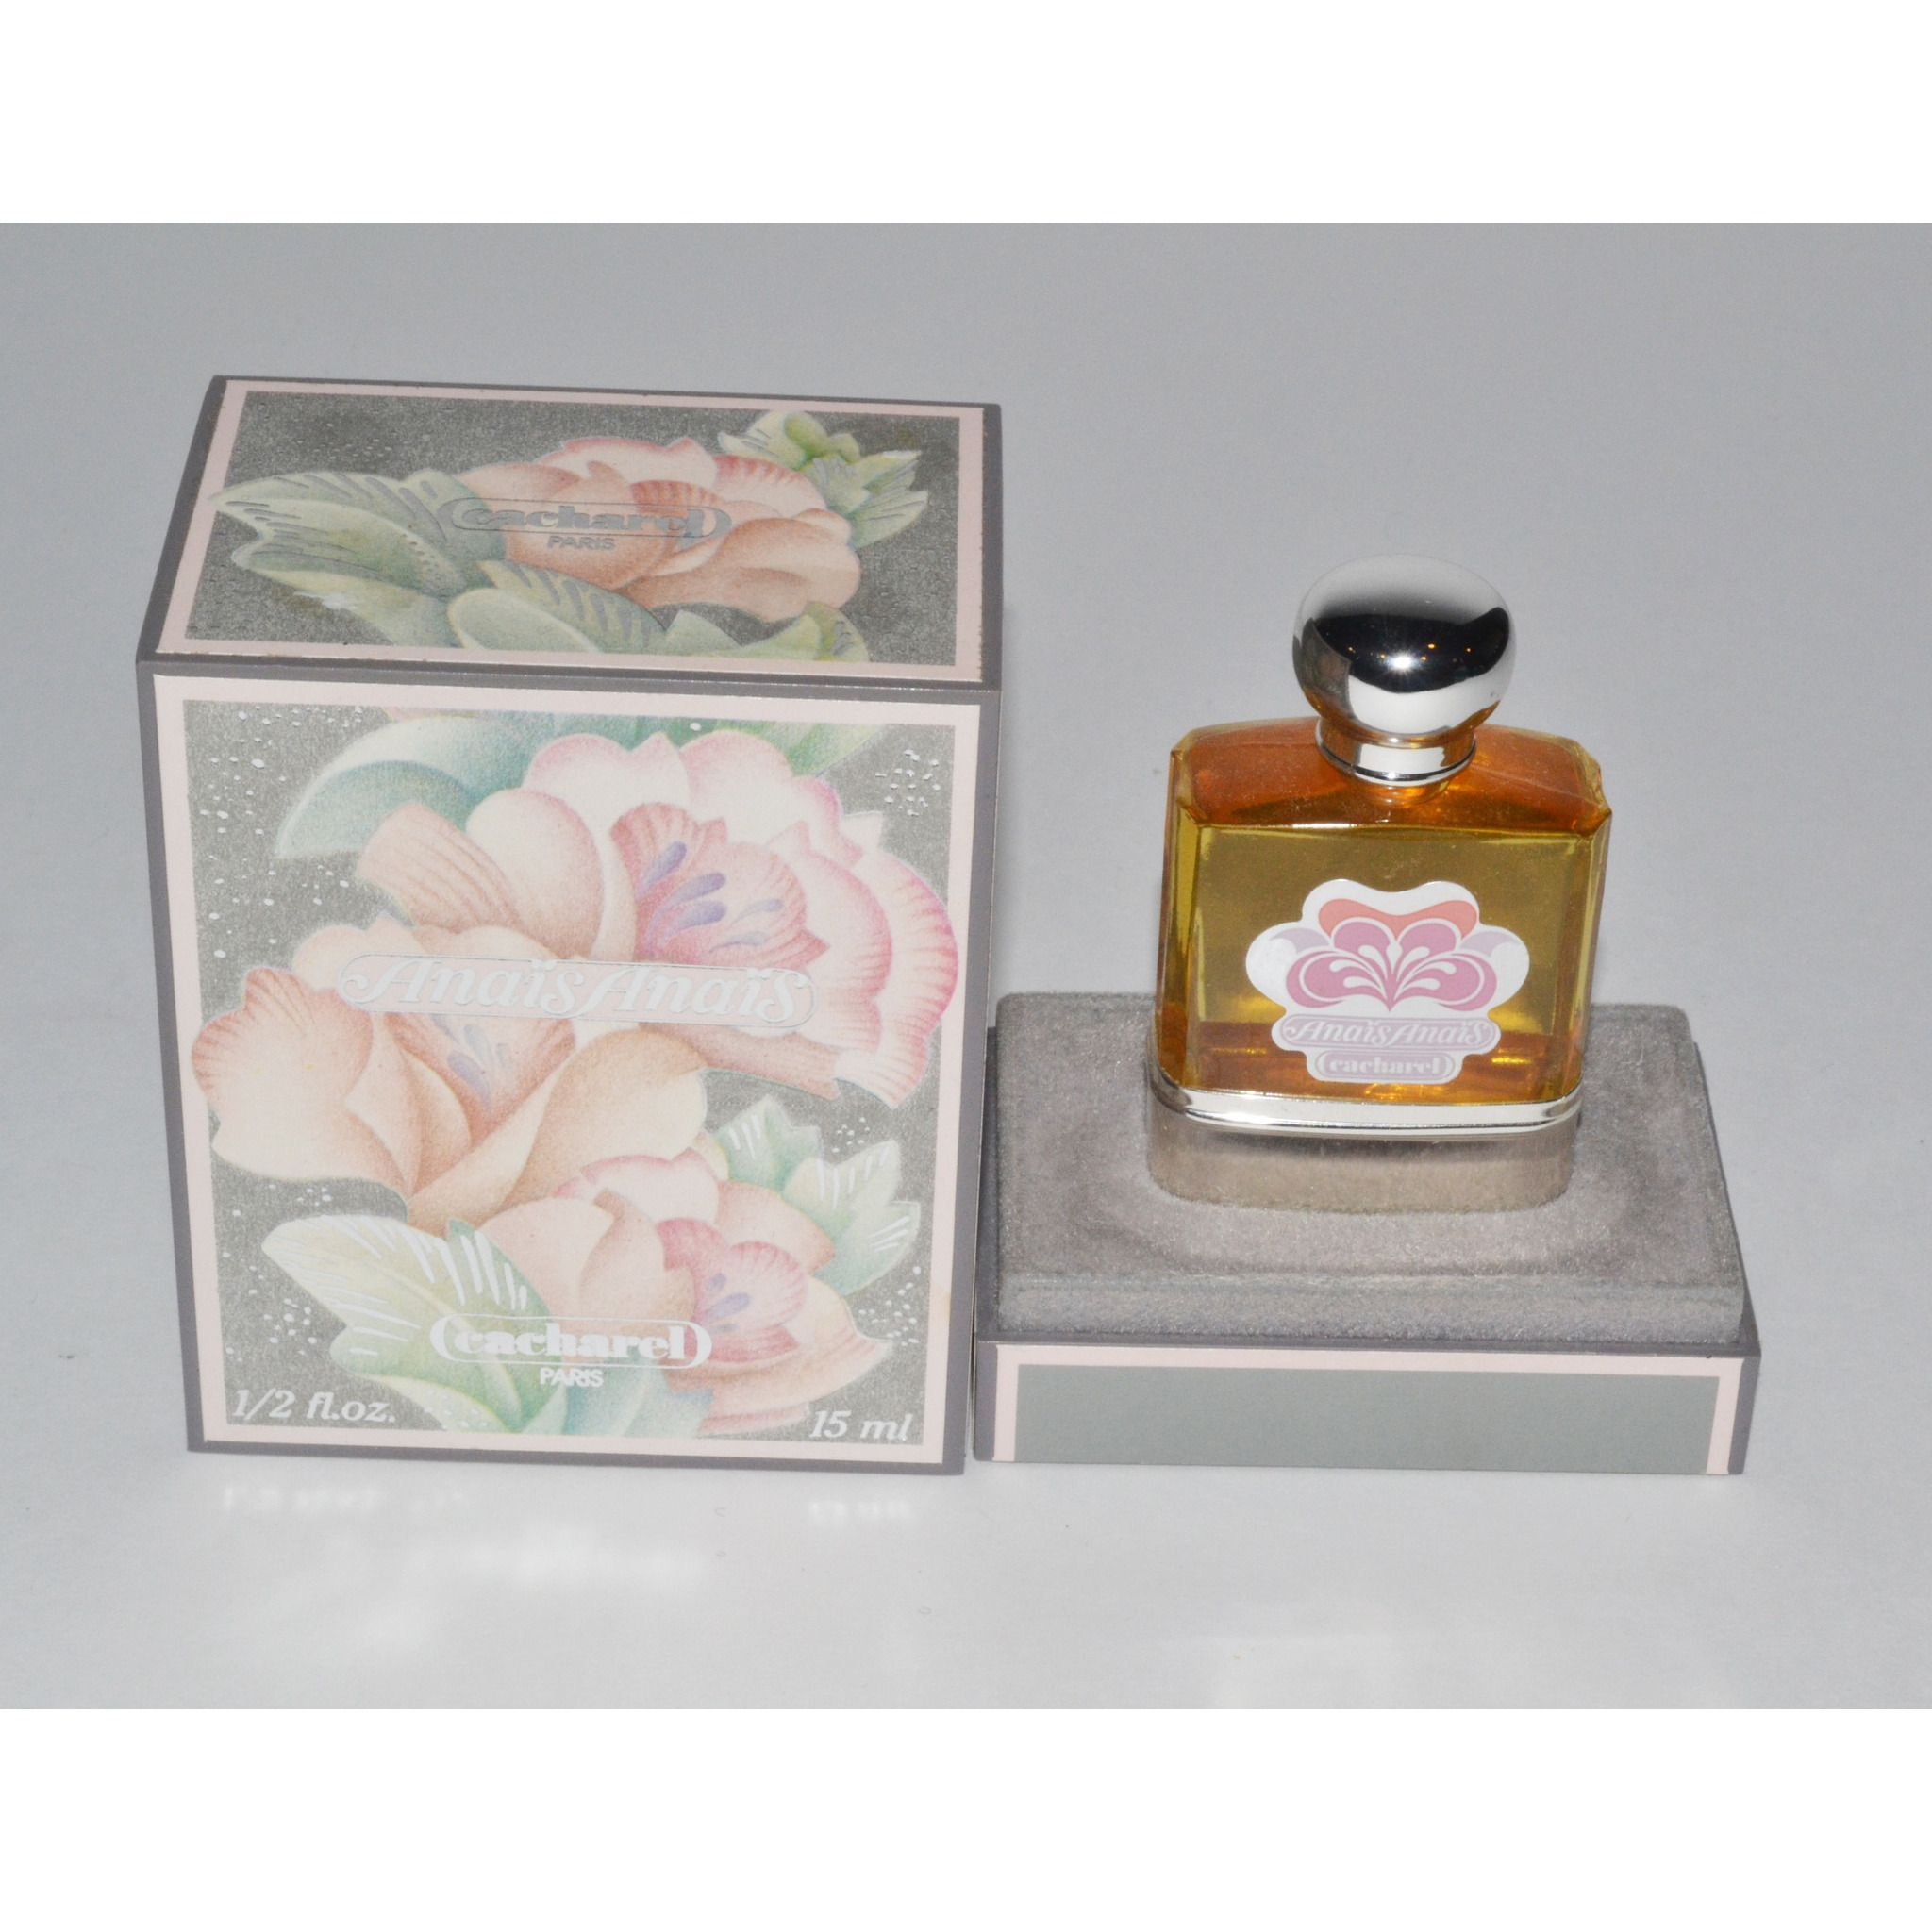 Anais Anais Parfum De Toilette By Cacharel